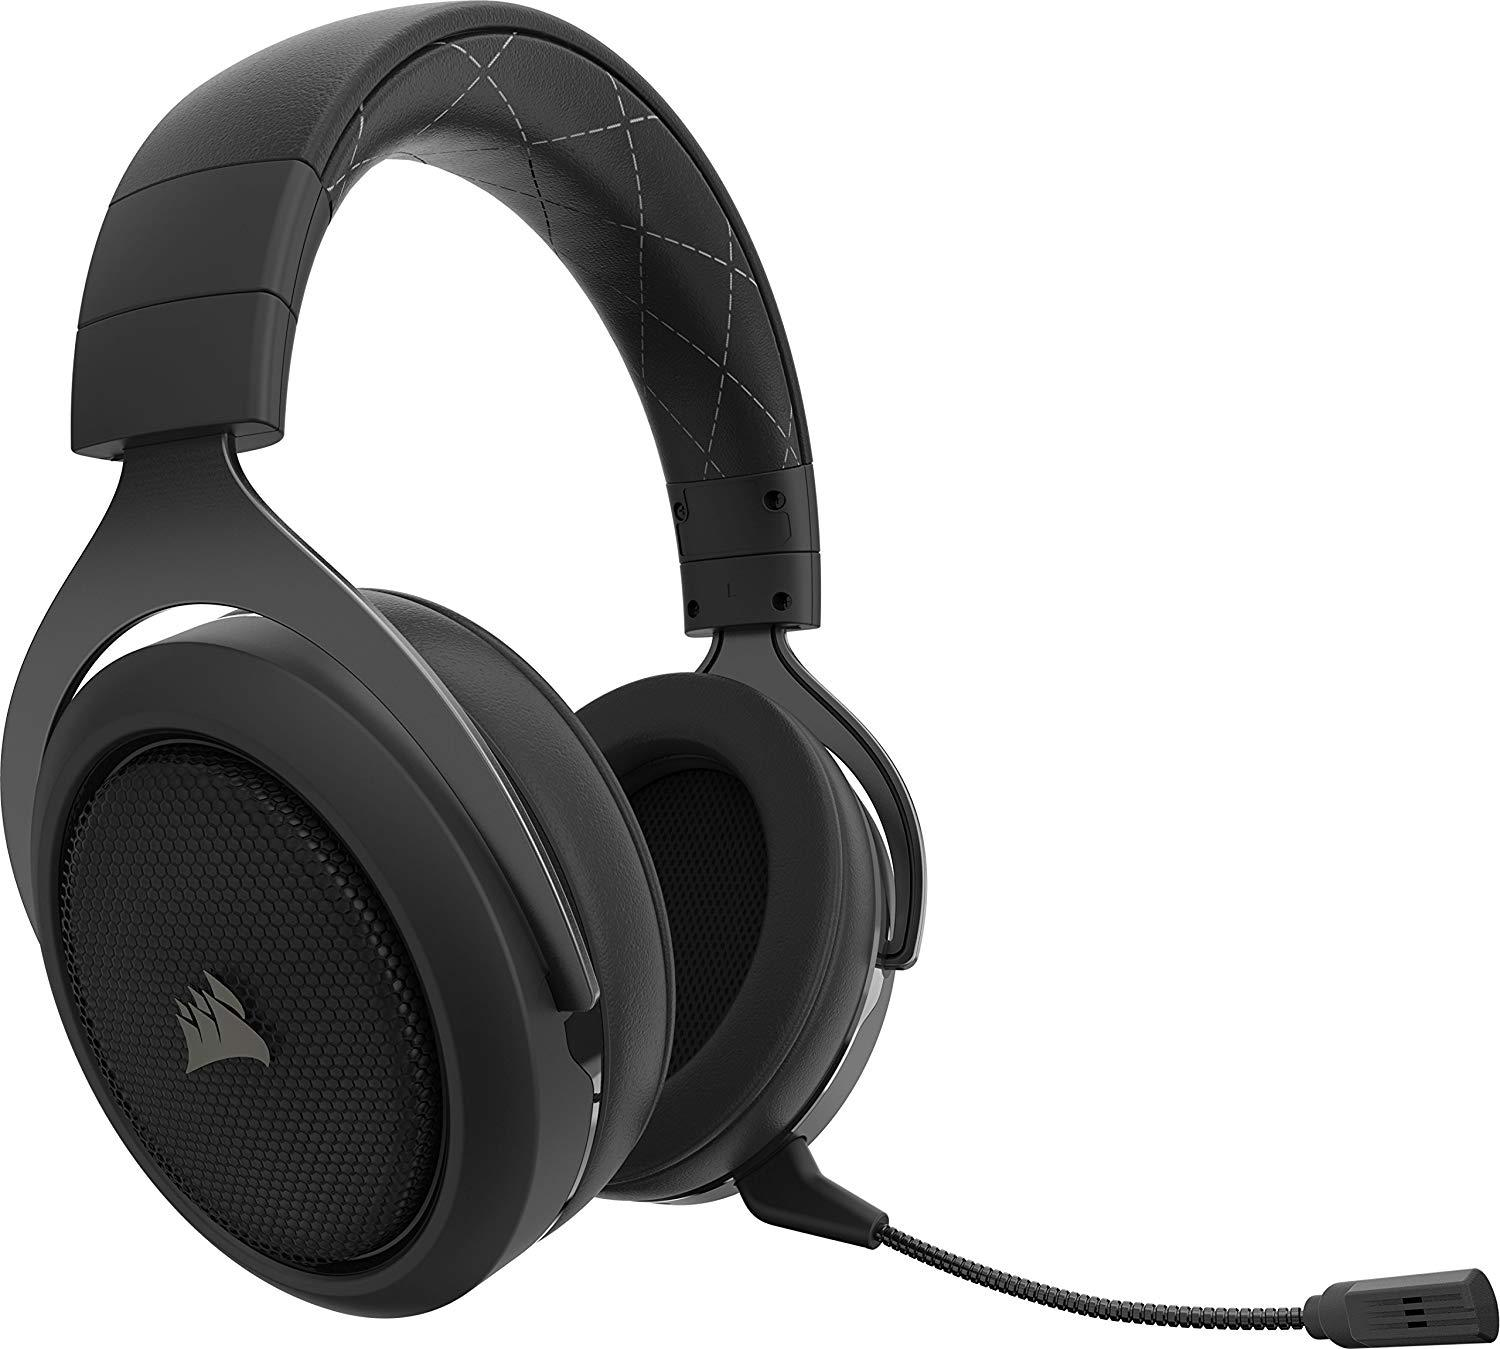 Corsair Philippines Price List Headphones Flash K66 Mechanical Cherry Mx Red Black Color Hs70 Wireless Gaming Headset With 71 Surround Sound